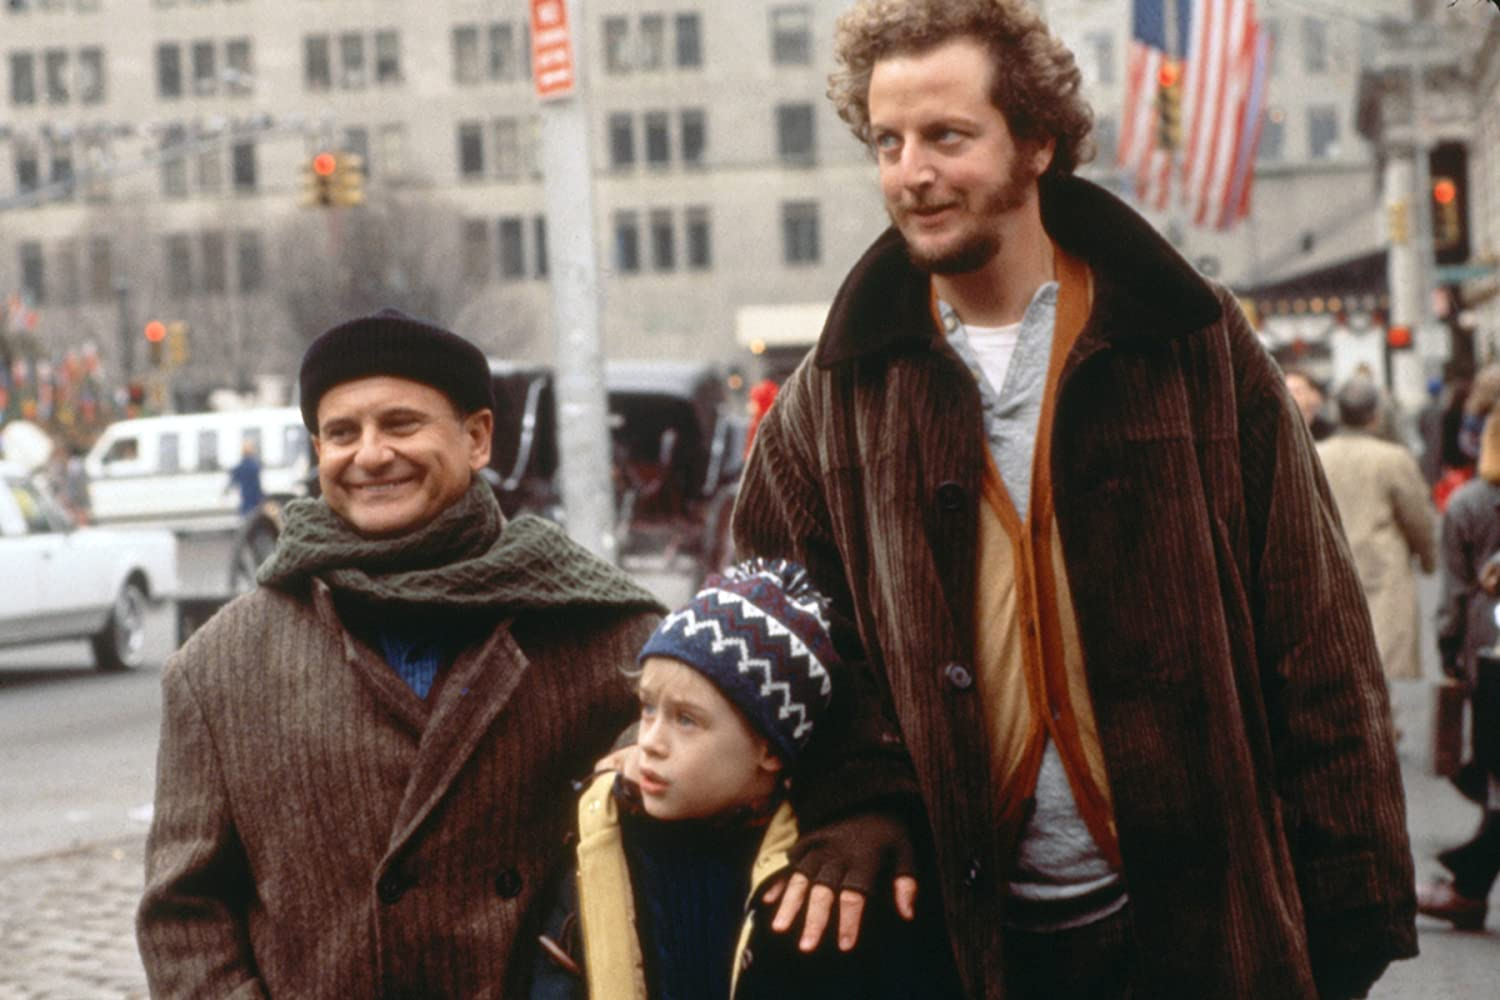 Macaulay Culkin, Joe Pesci, and Daniel Stern in Home Alone 2: Lost in New York (1992)